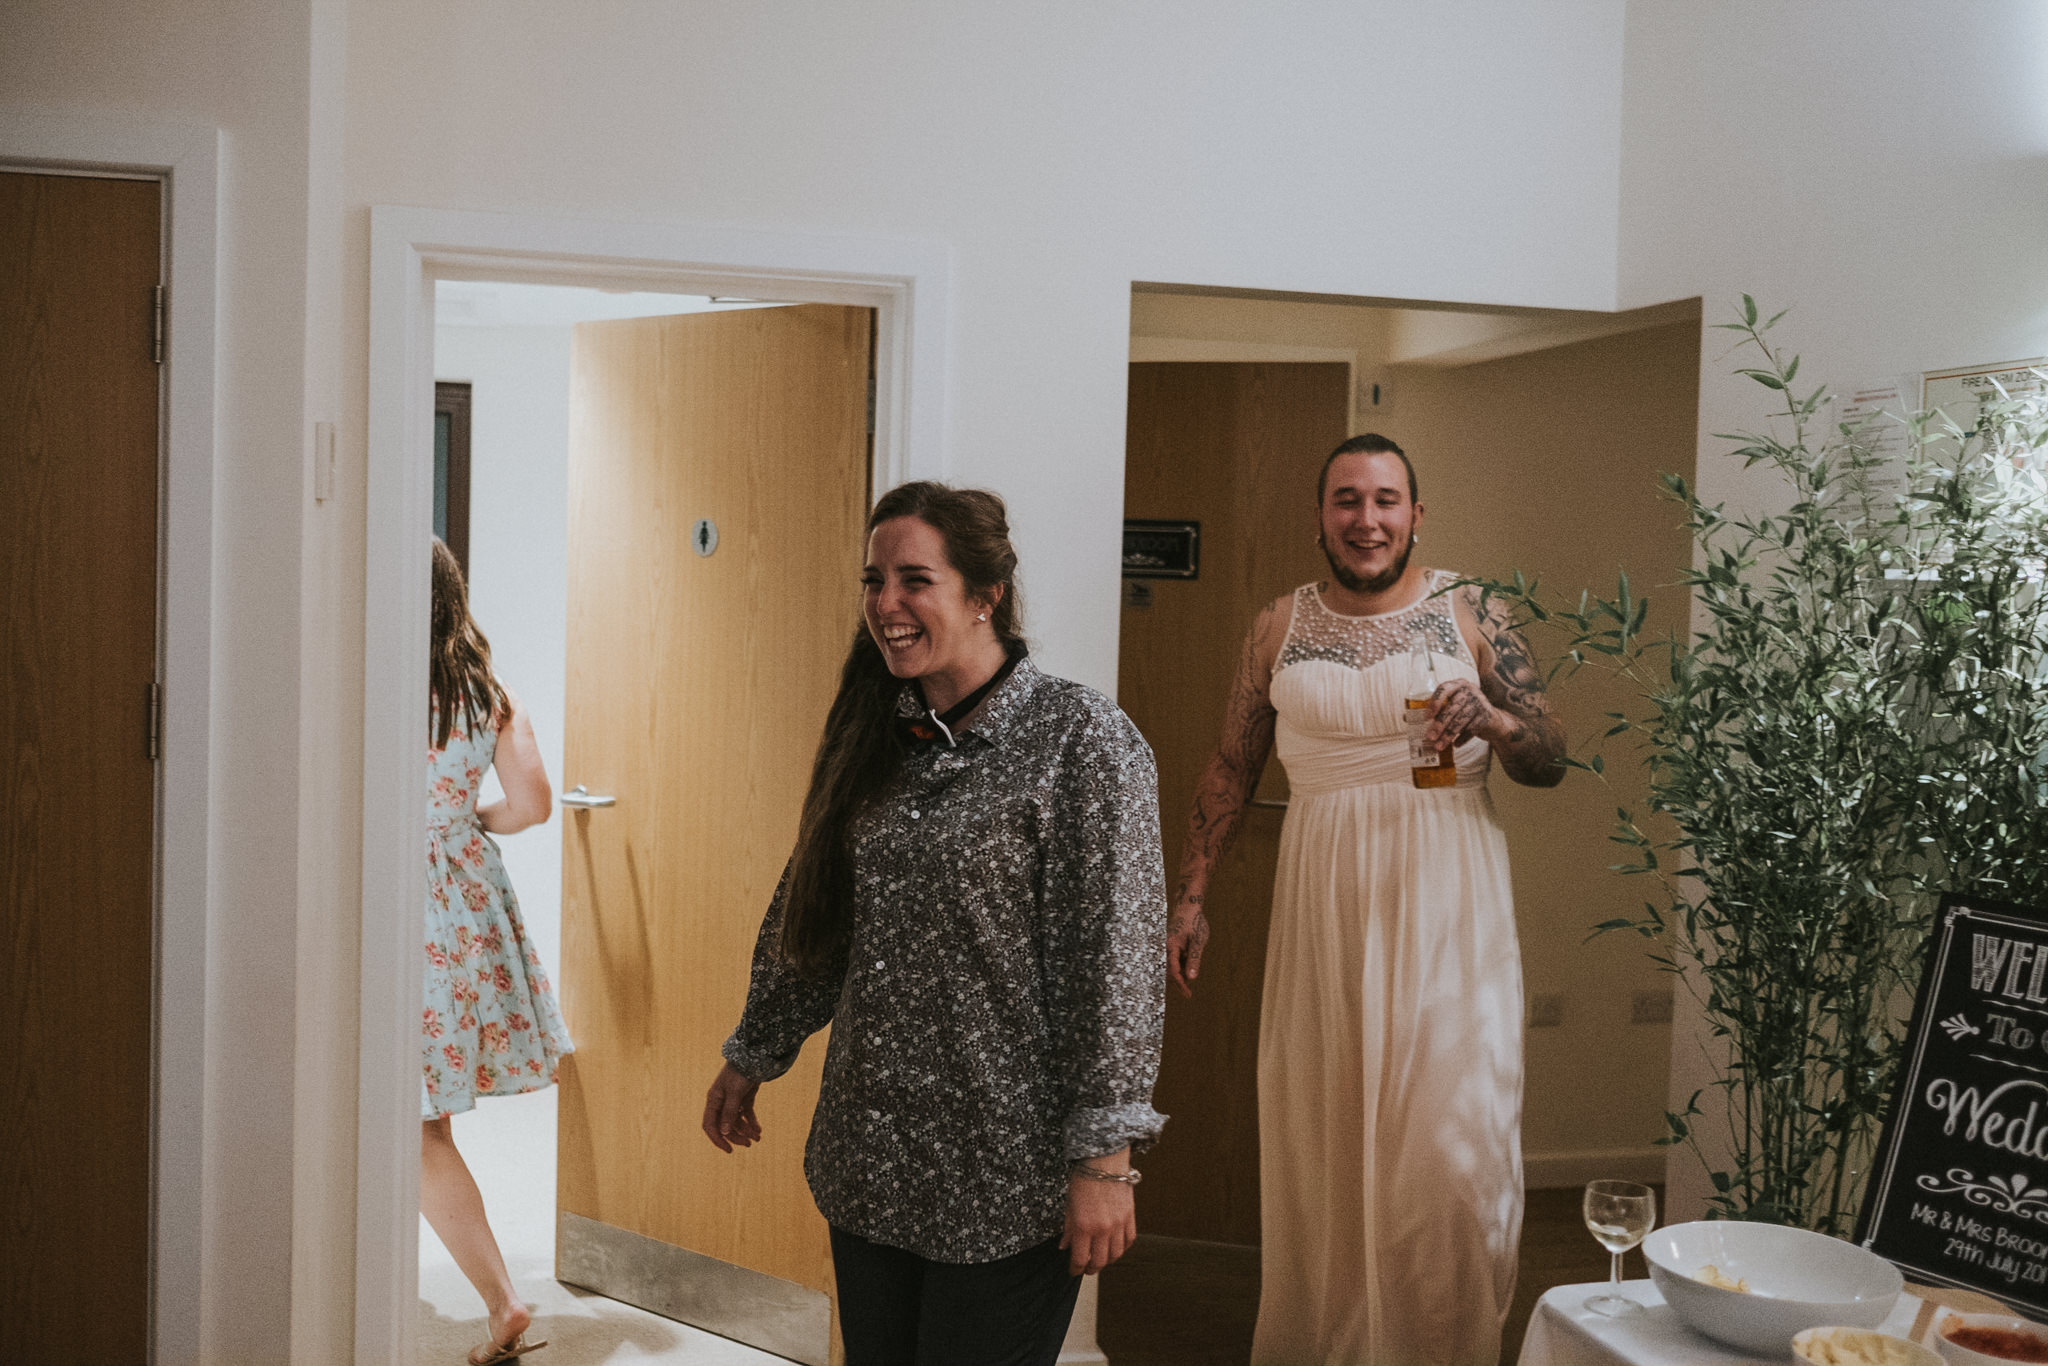 berkshire_wedding_photographer_emma_simon (298 of 327).jpg